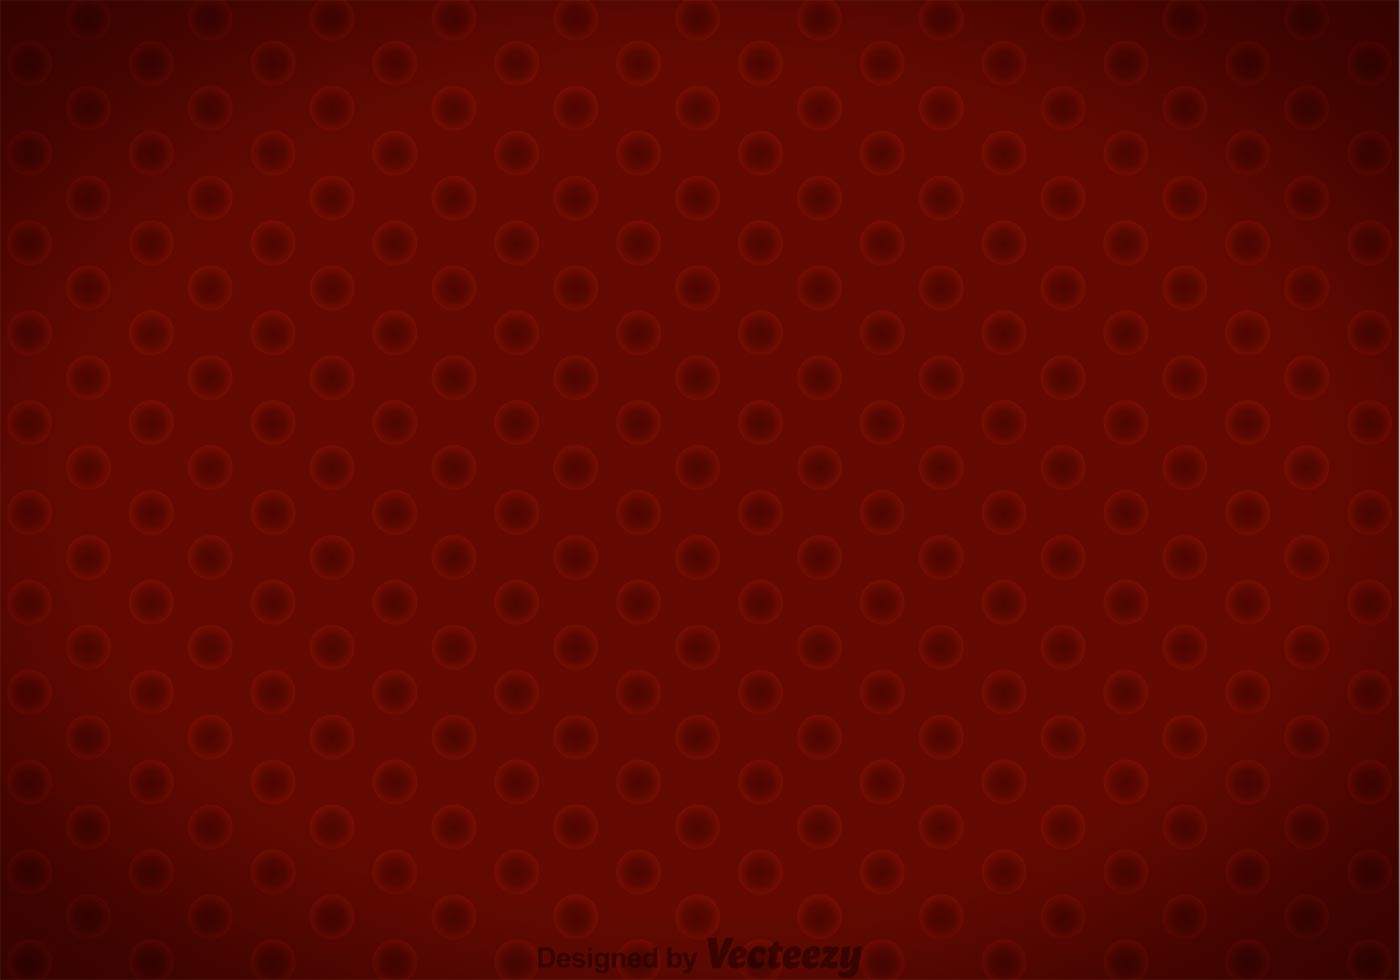 red maroon line background - photo #20